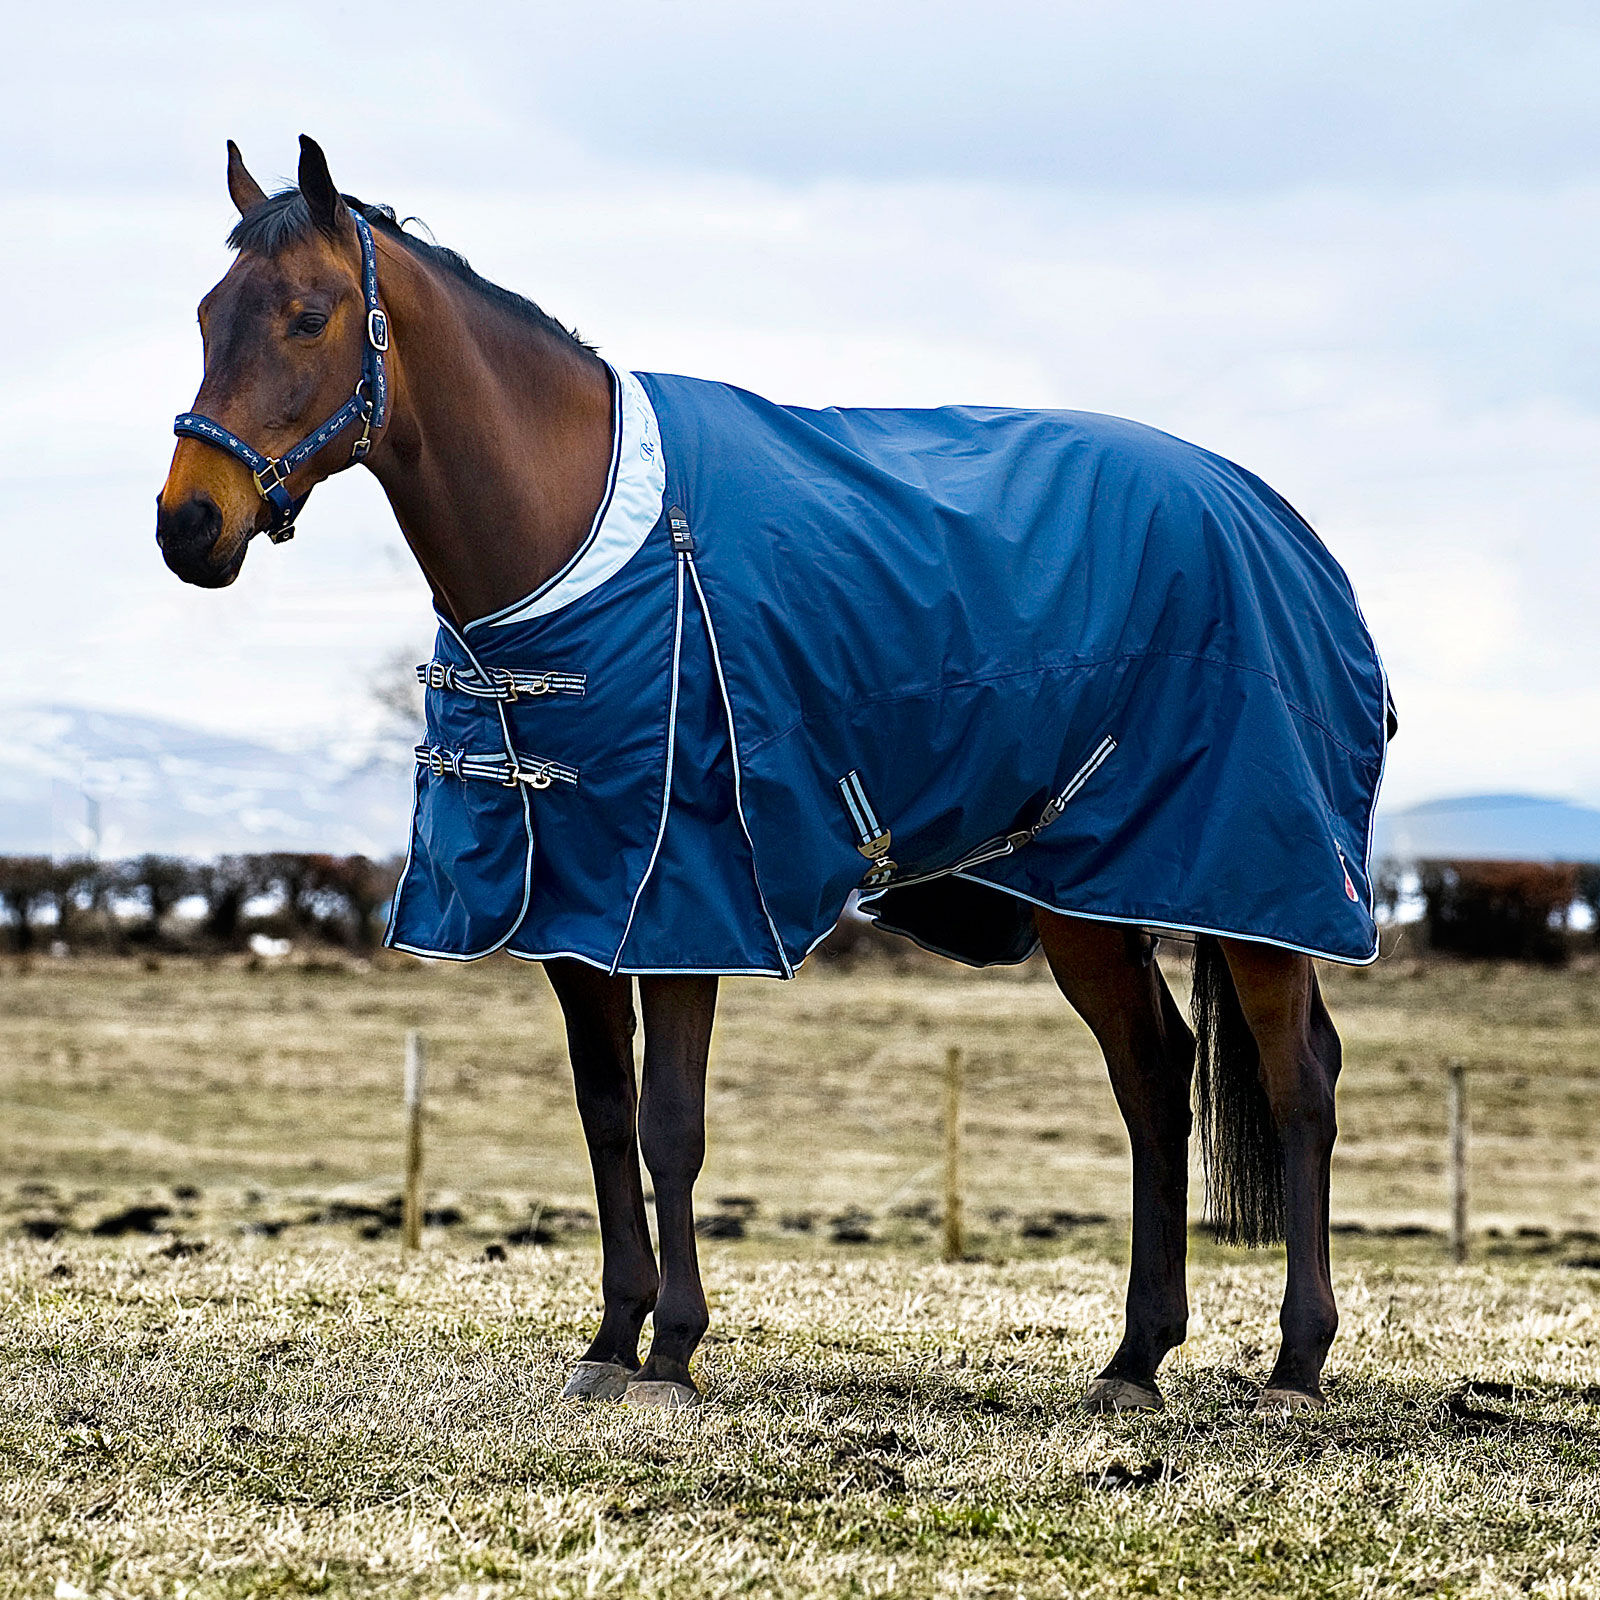 Horze Royal Equus Exclusive turnout blanket